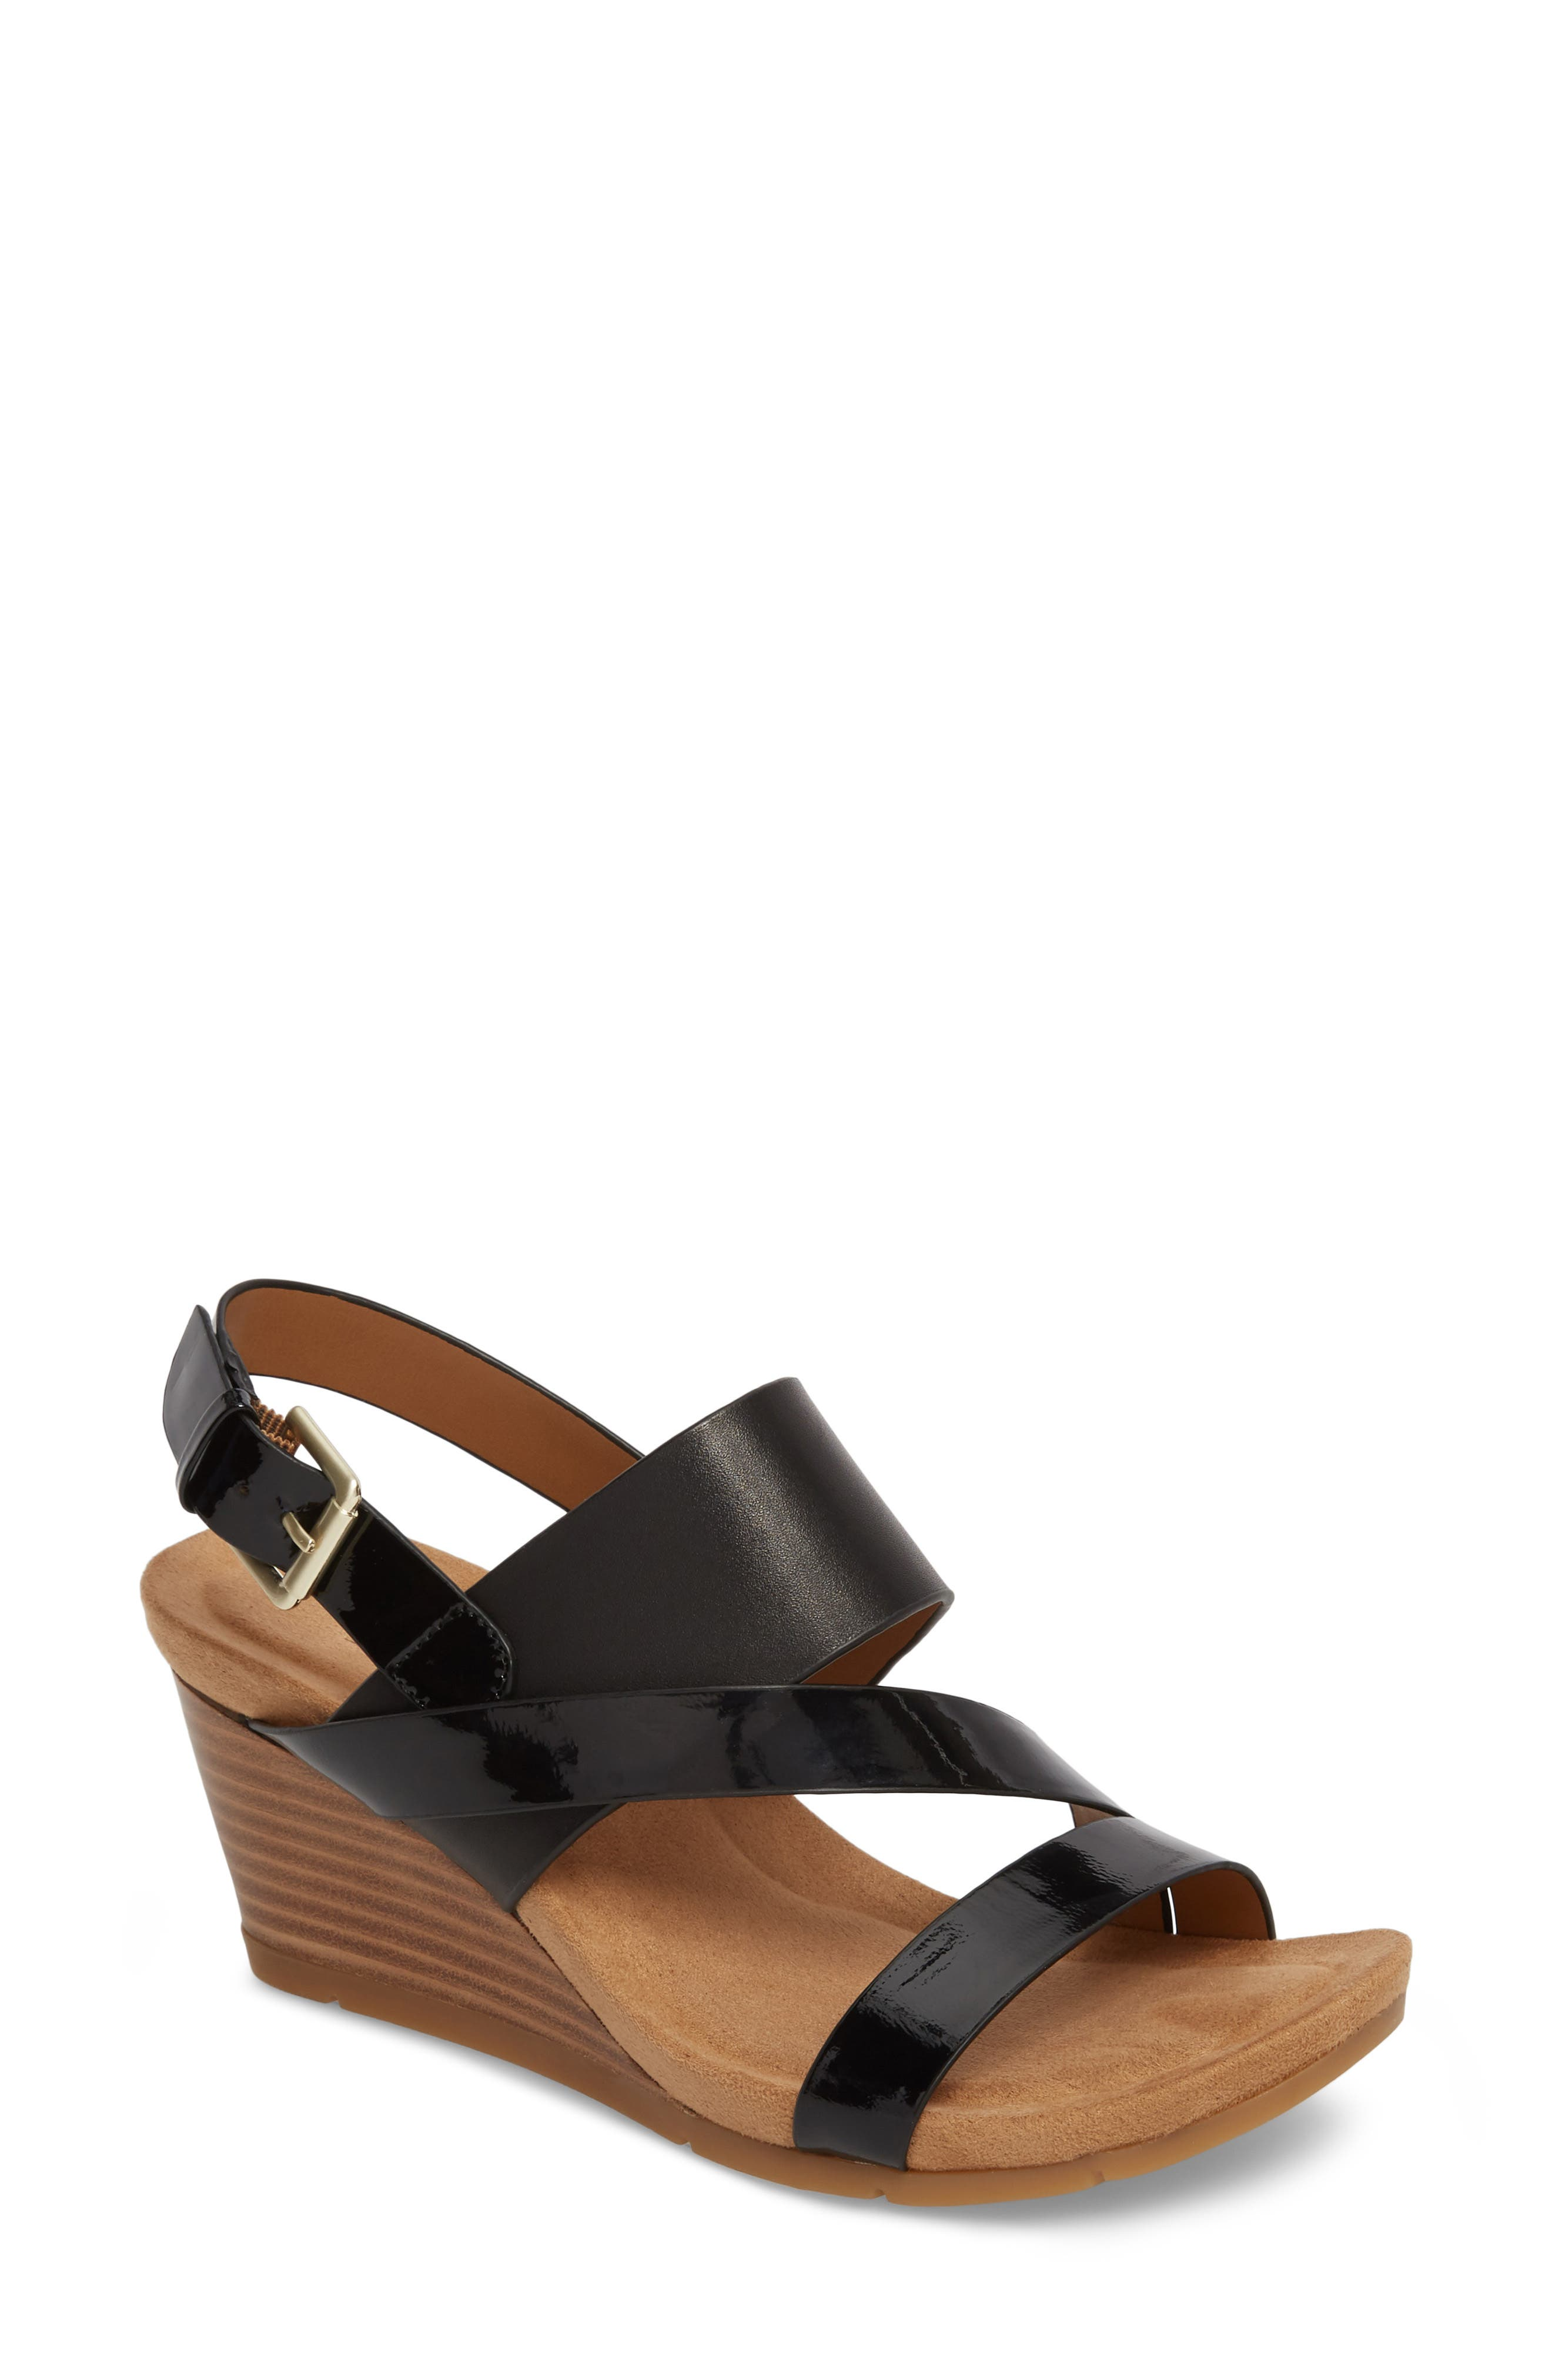 Vail Wedge Sandal,                         Main,                         color, Black Leather